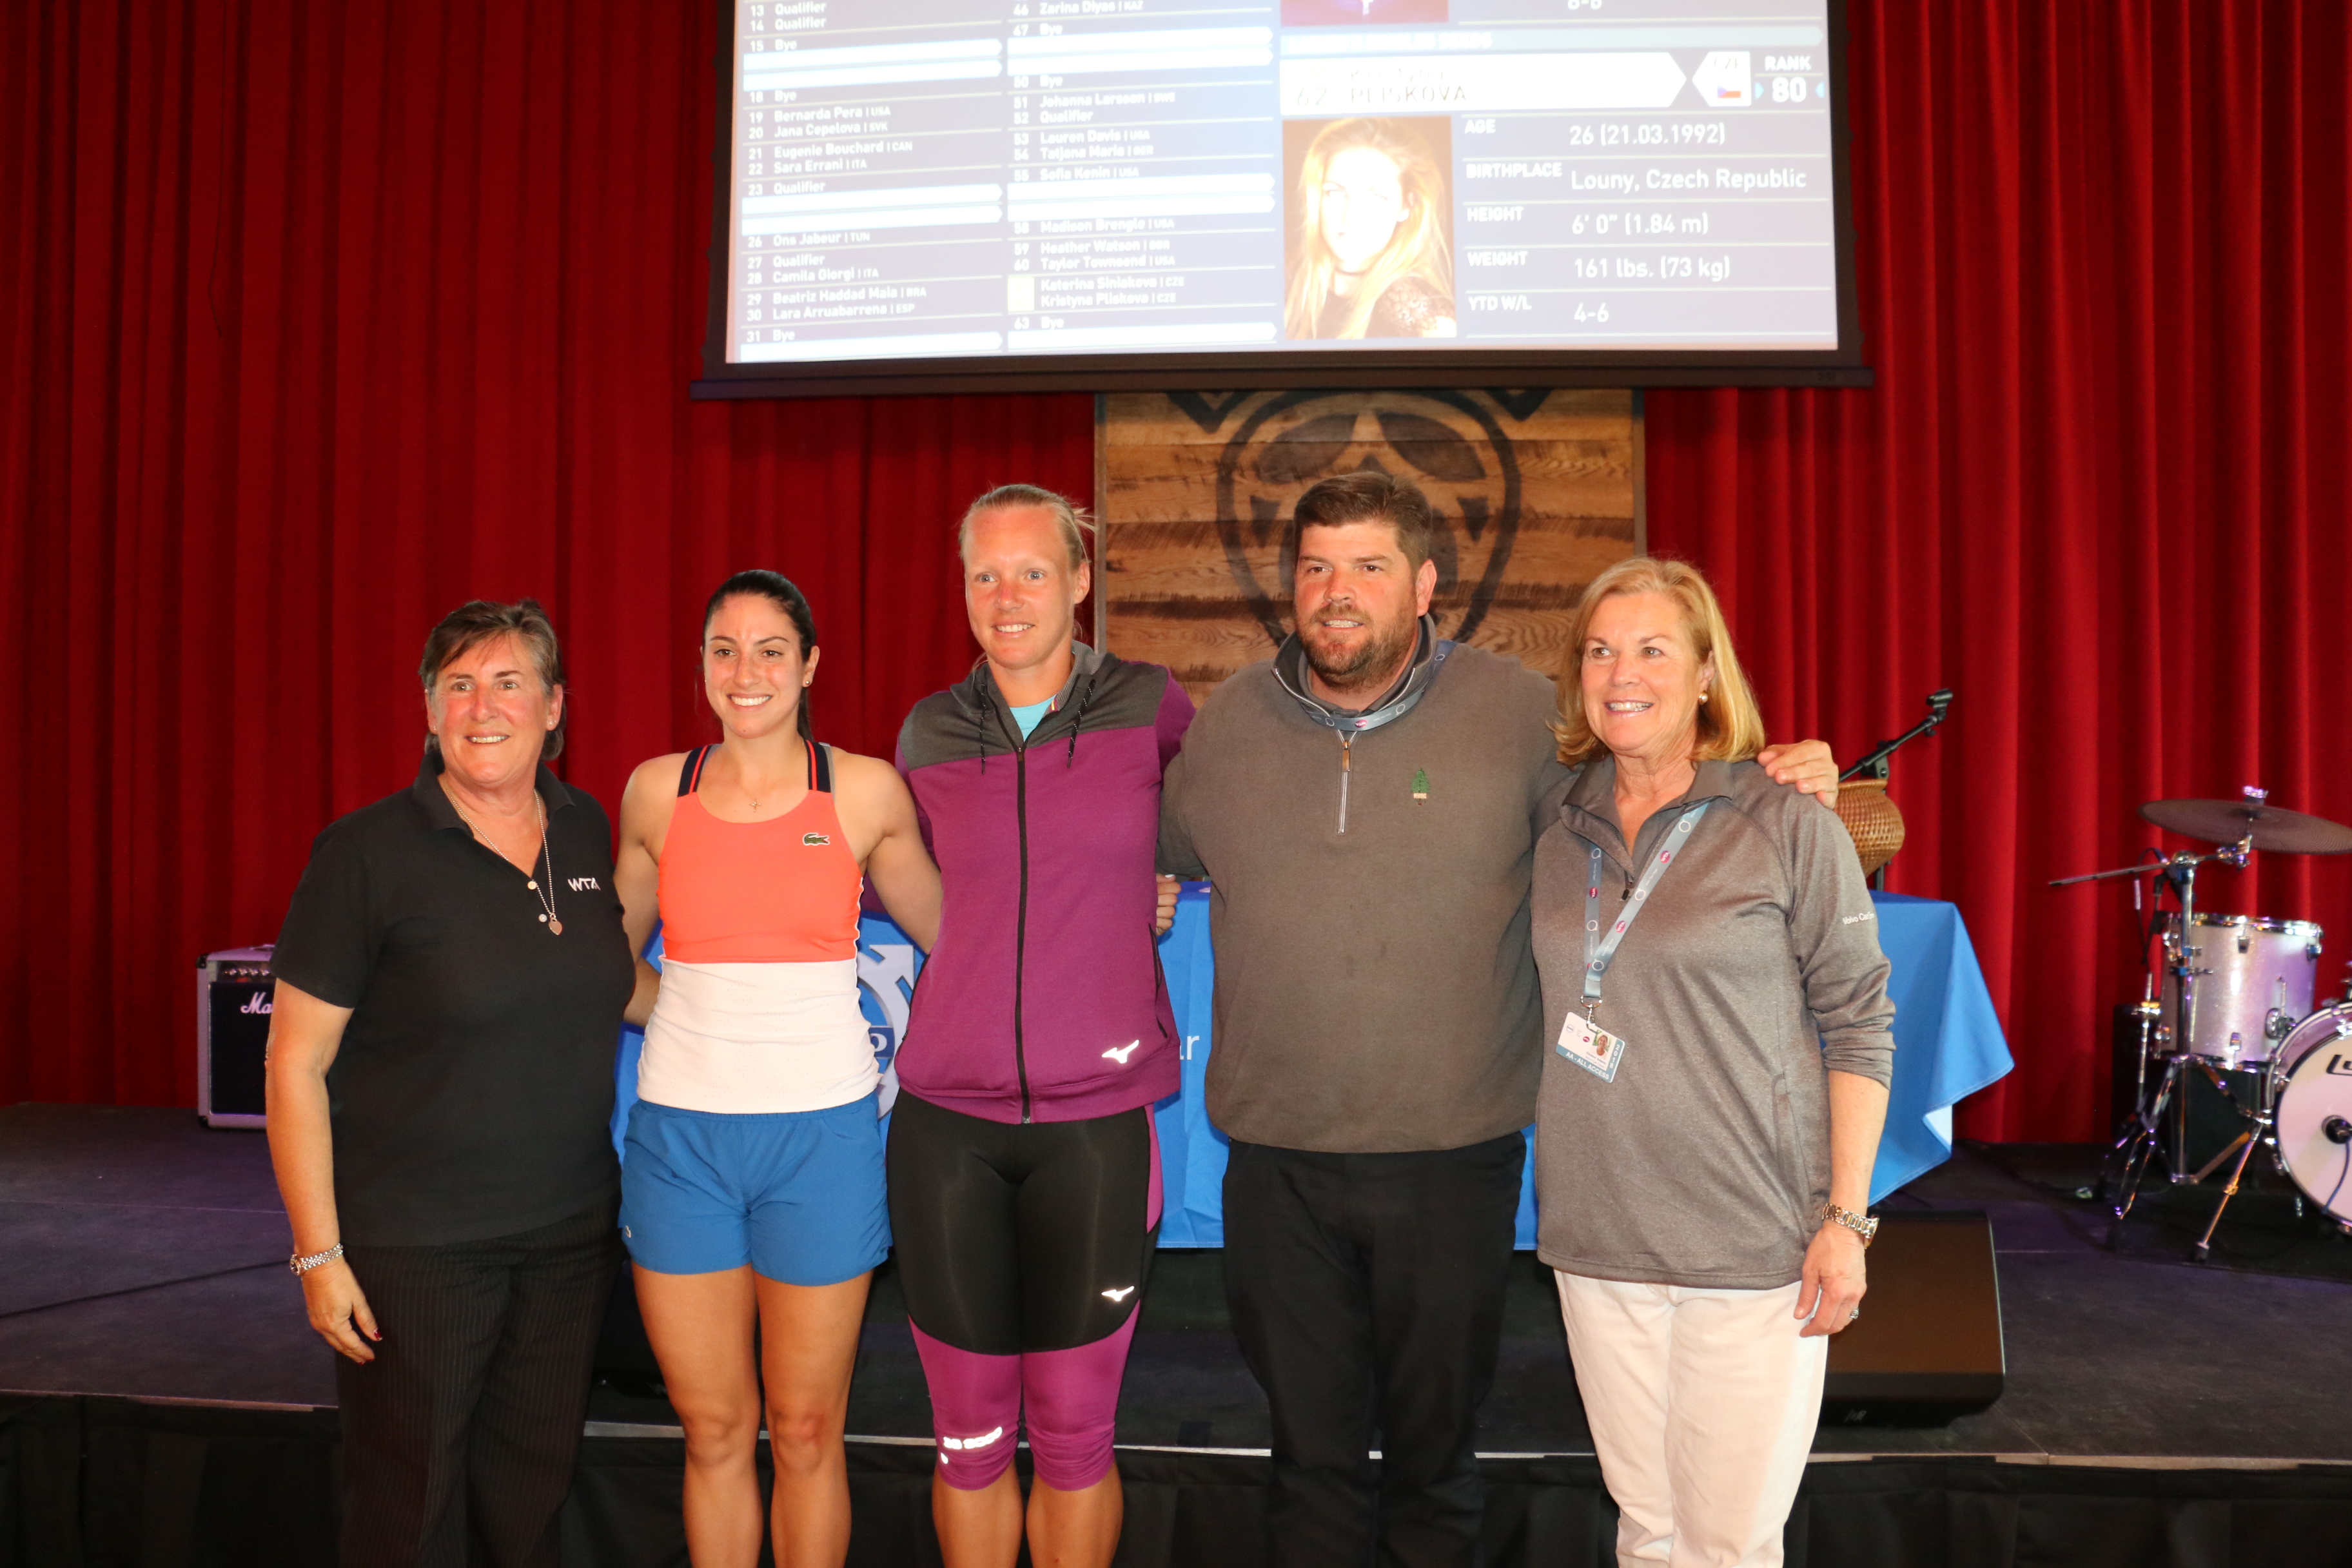 Pam Whytcross of the WTA, players Christina Mchale and Kiki Bertens, and VCO tournament executives Bob Moran and Eleanor Adams gather at the conclusion of the official draw.